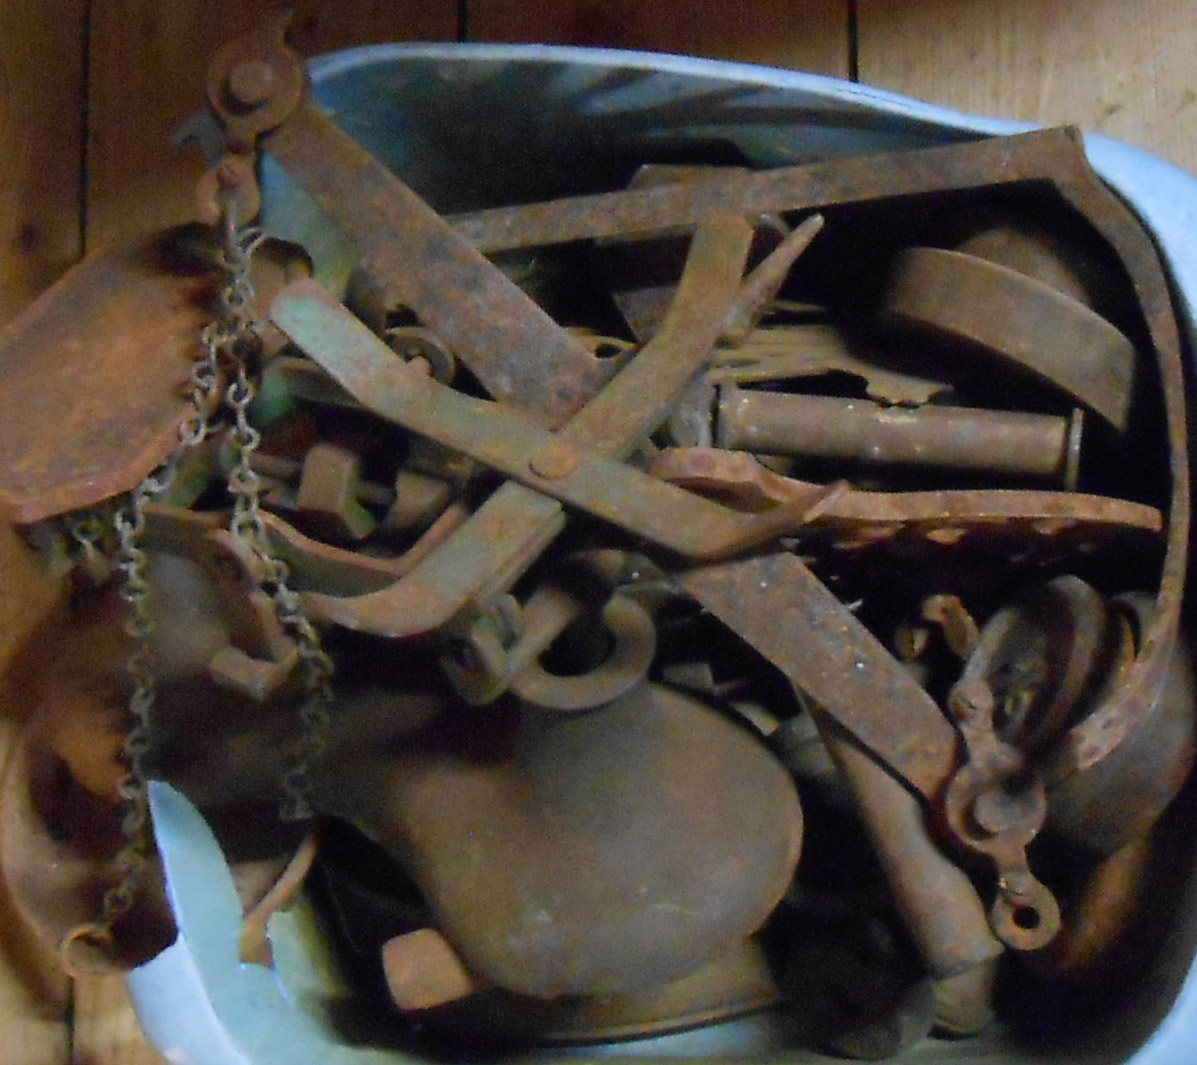 Various scales, weights, trivet and flat iron, etc.